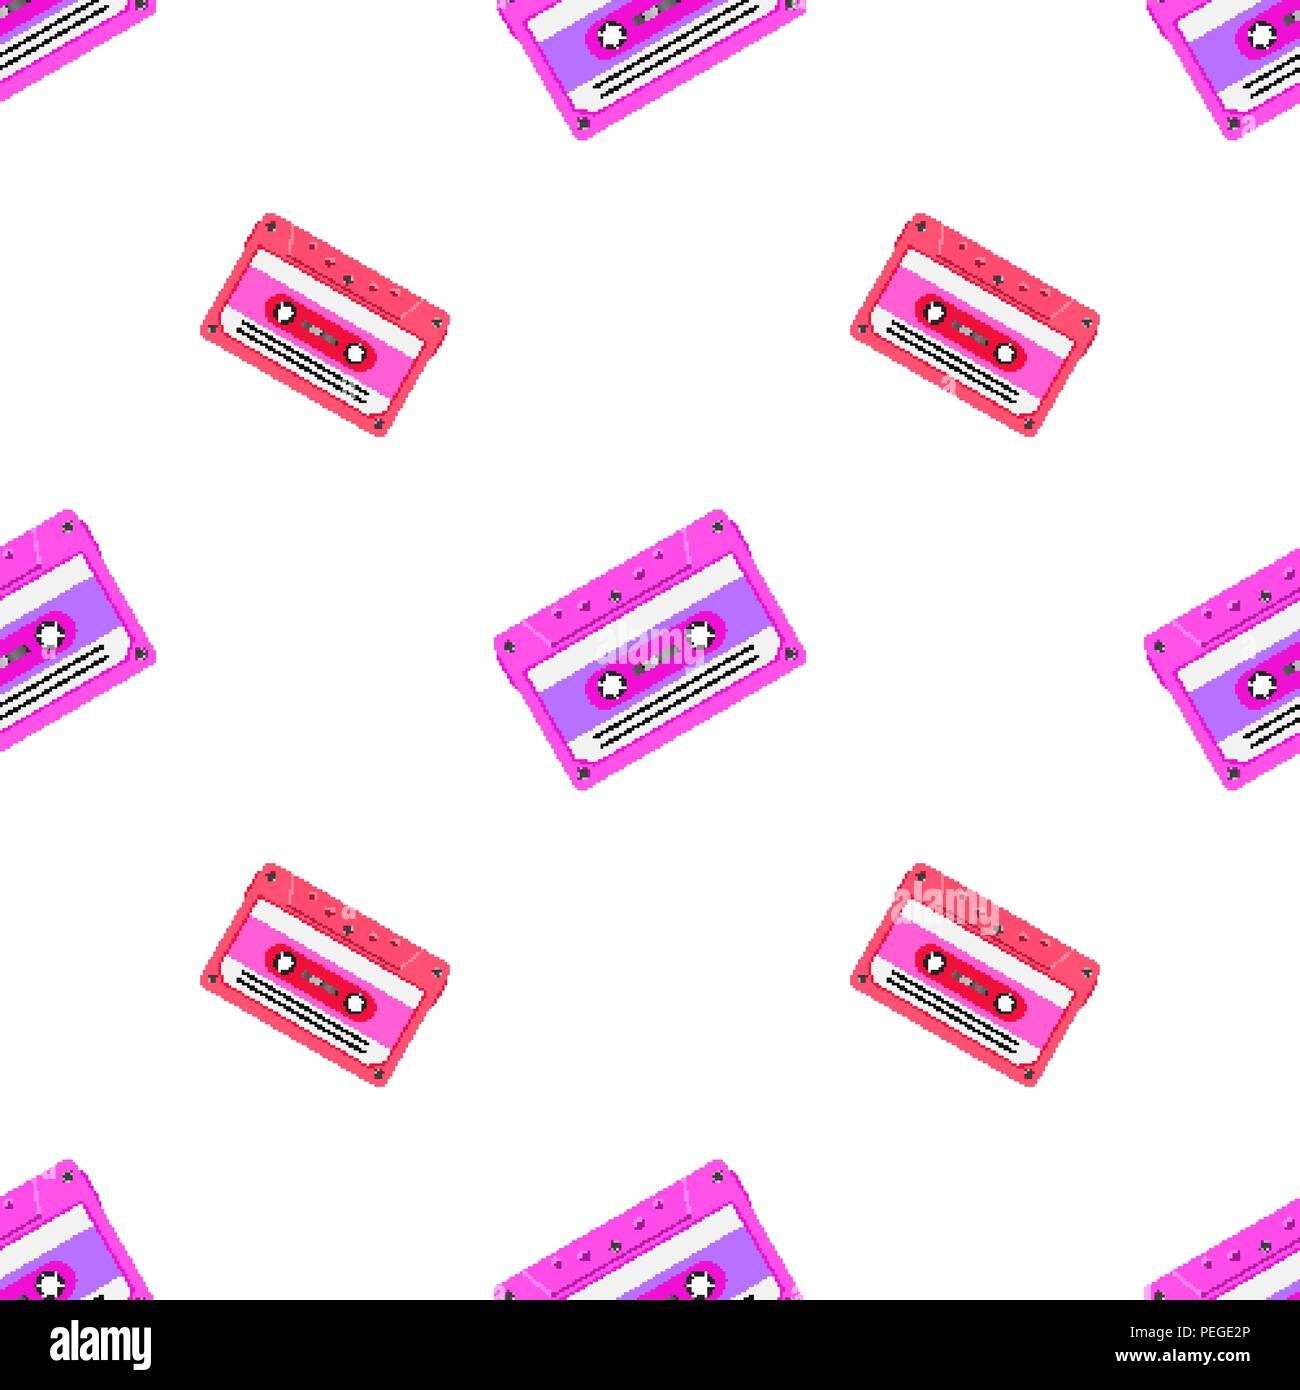 Retro seamless background with audio tapes. Magnetic audiotapes tileable pattern - Stock Image